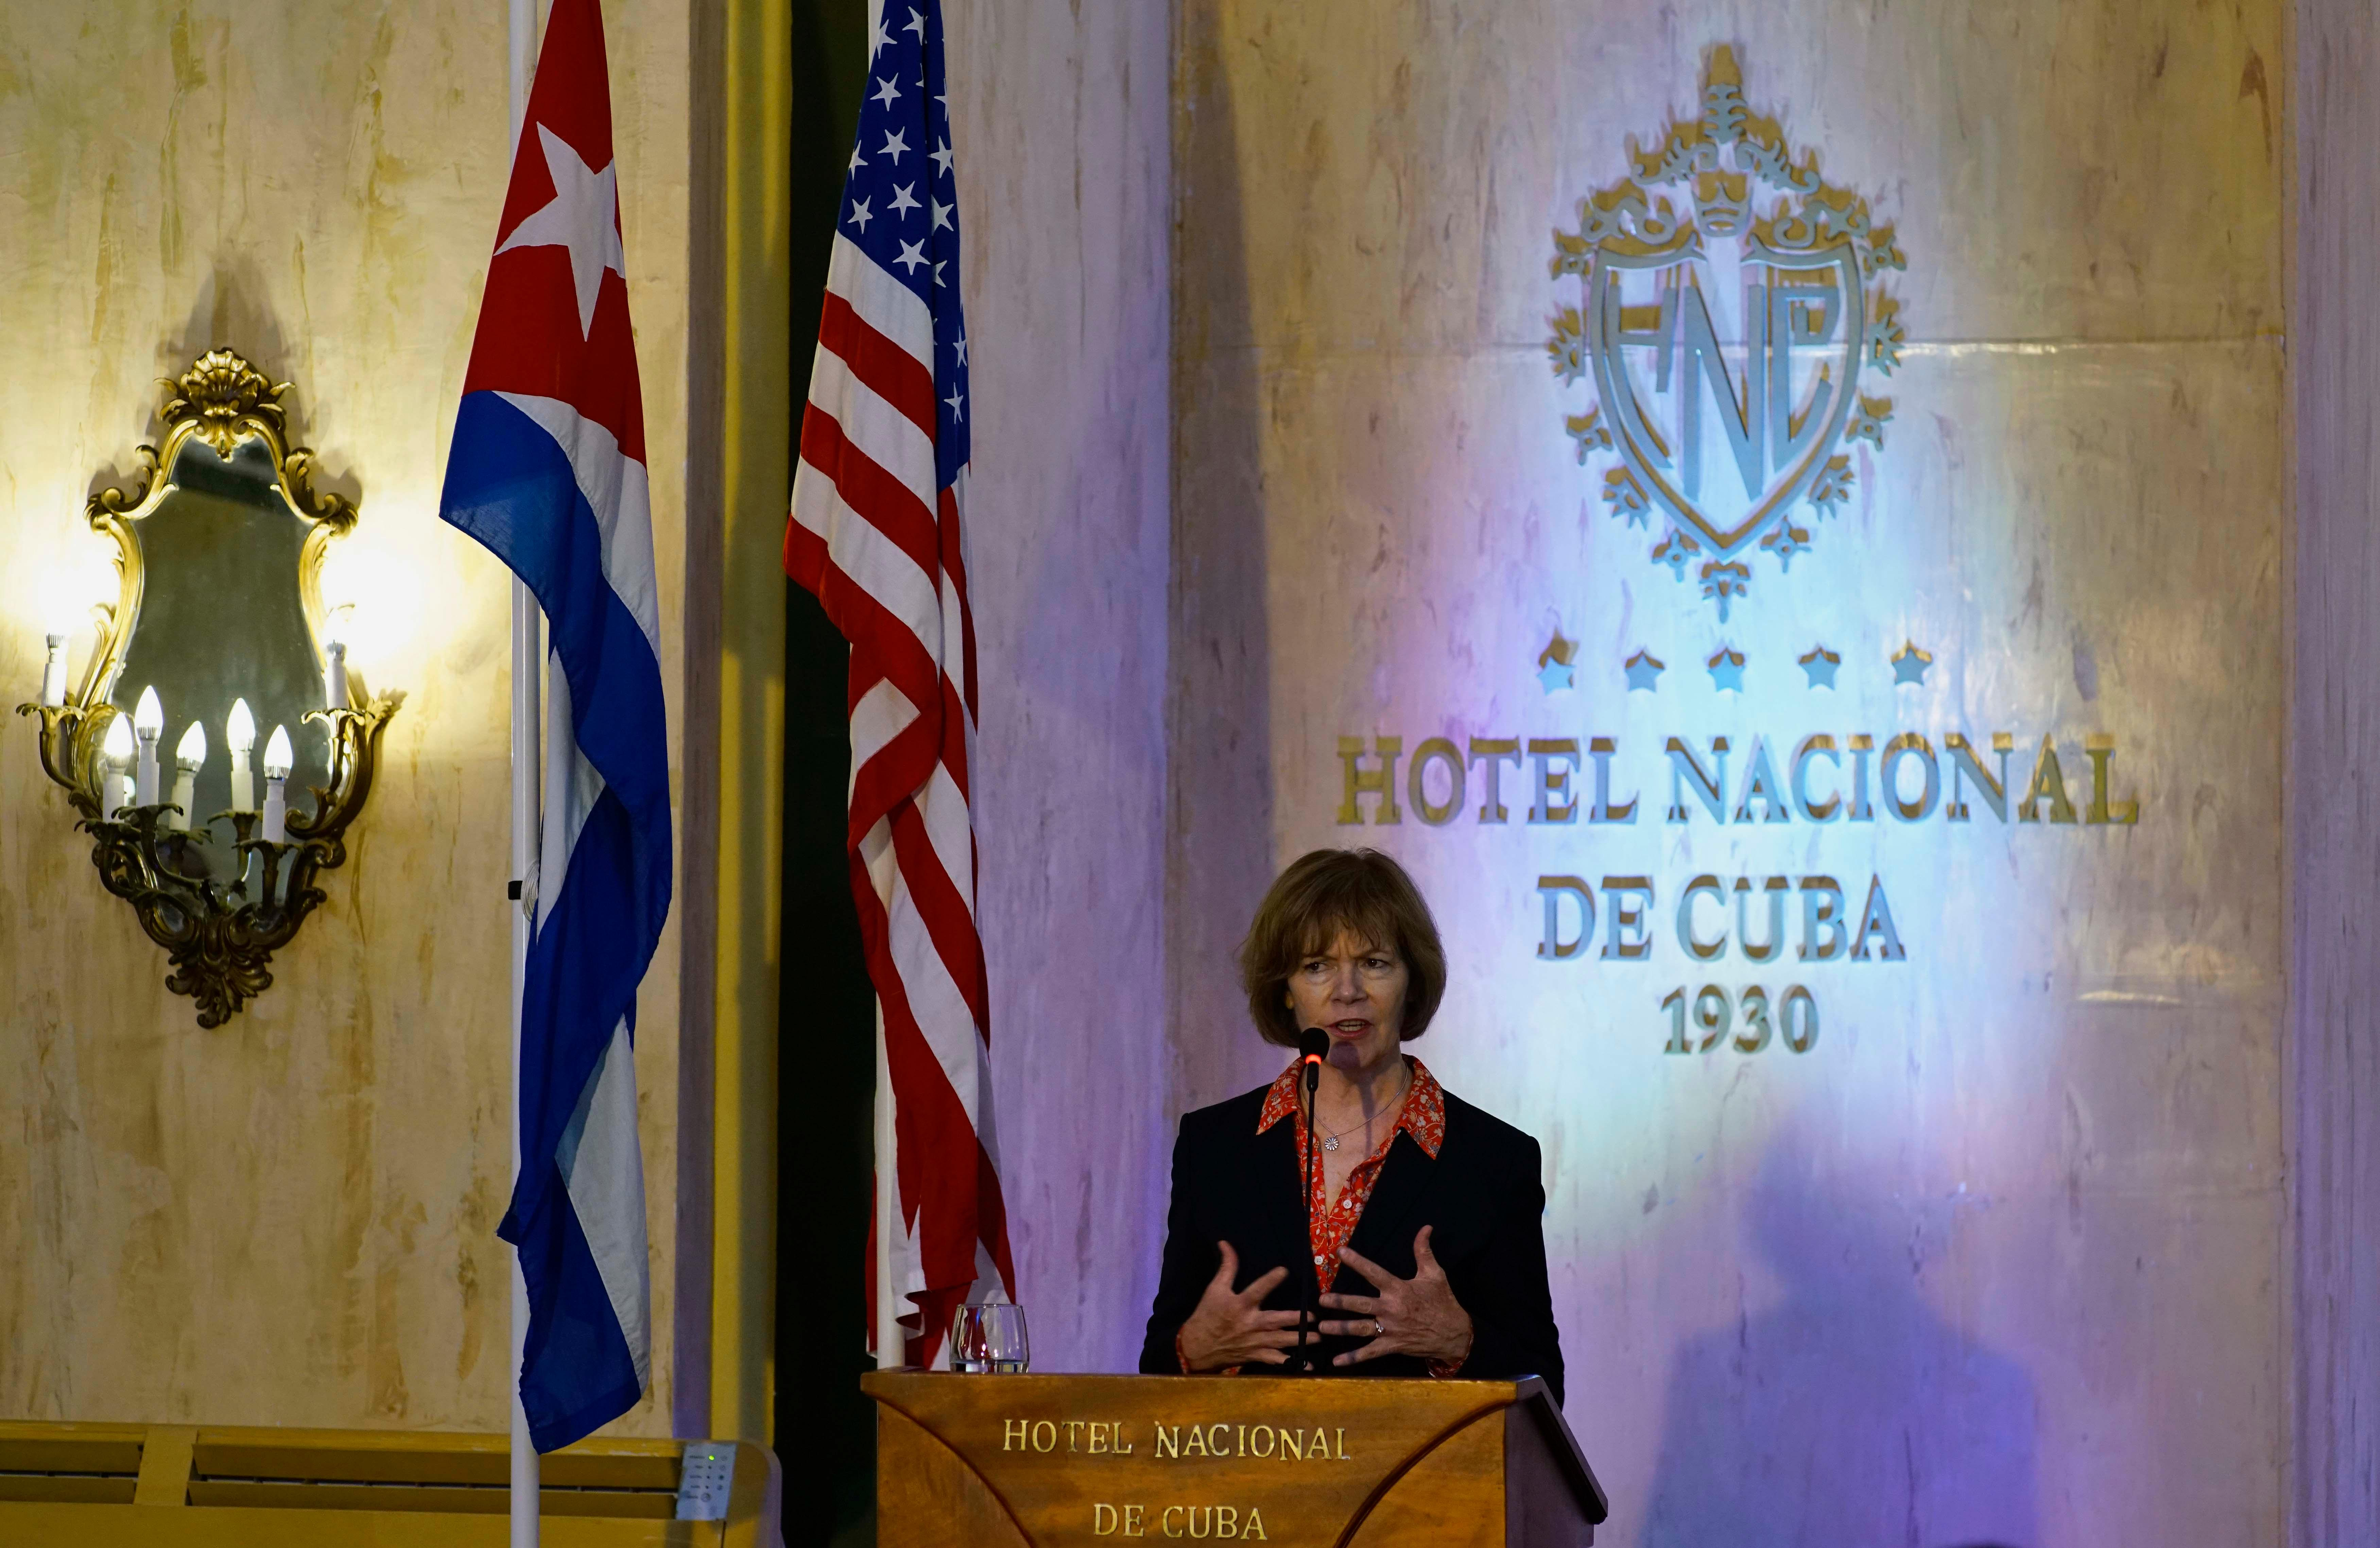 Minnesota Lt. Governor Tina Smith gives a press conference at Hotel Nacional in Havana, Cuba, Thursday, June 22, 2017. Smith is part of the first U.S. delegation to visit Cuba after President Donald Trump announced a revised Cuba policy aimed at halting the flow of U.S. cash to the country's military and security services while maintaining diplomatic relations. (AP Photo/Ramon Espinosa)